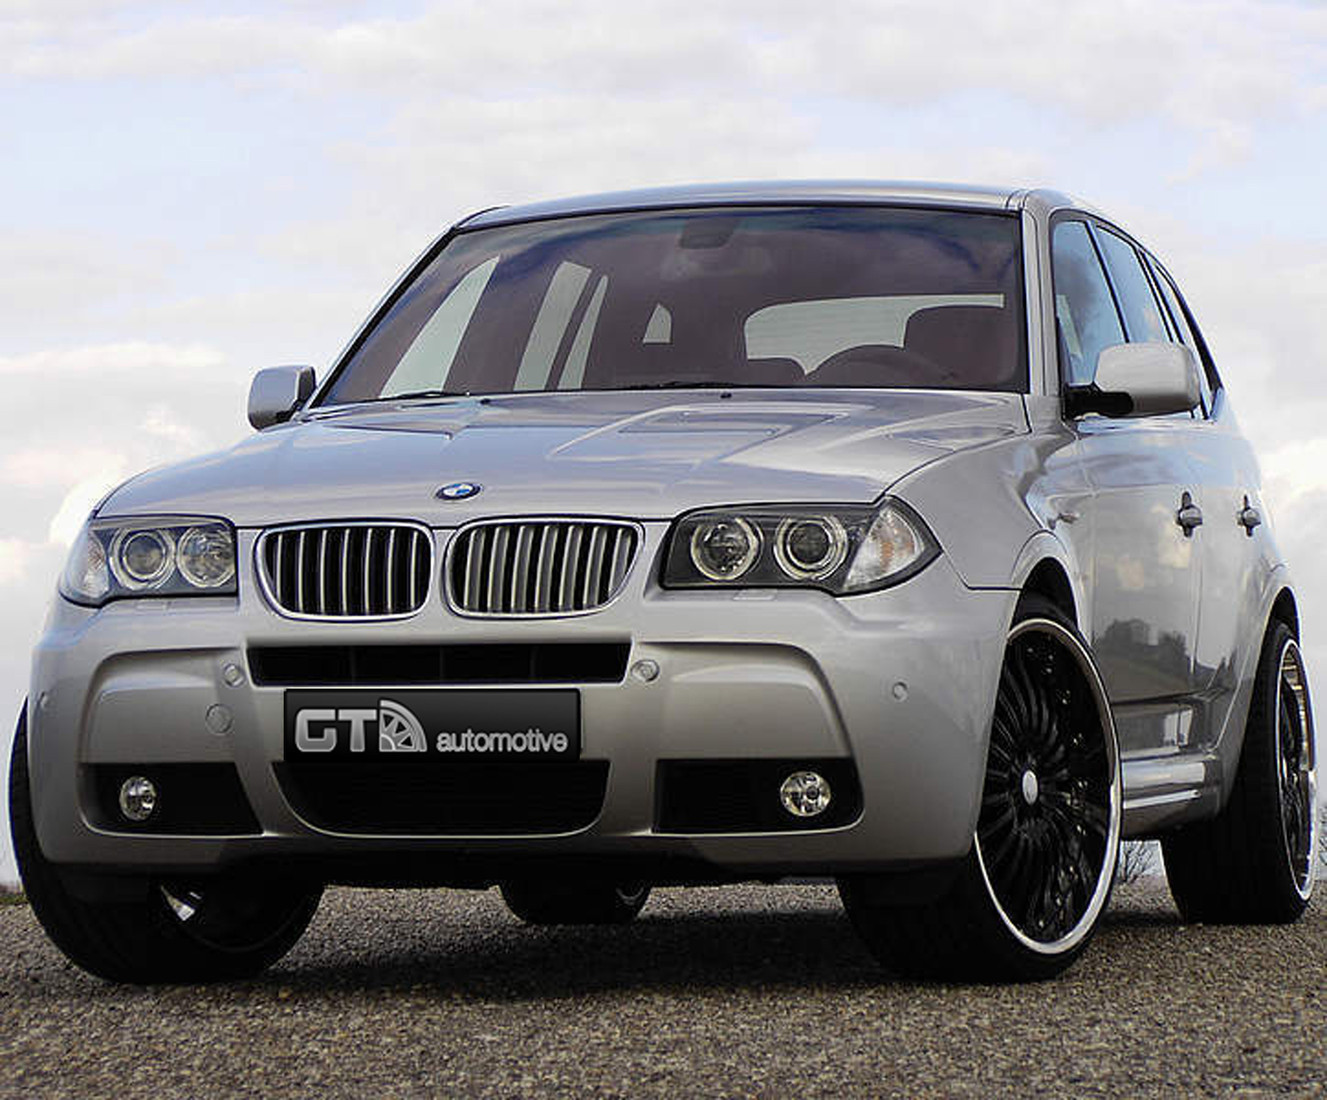 bmw x3 typ x83 galerie by gt automotive gmbh co kg. Black Bedroom Furniture Sets. Home Design Ideas